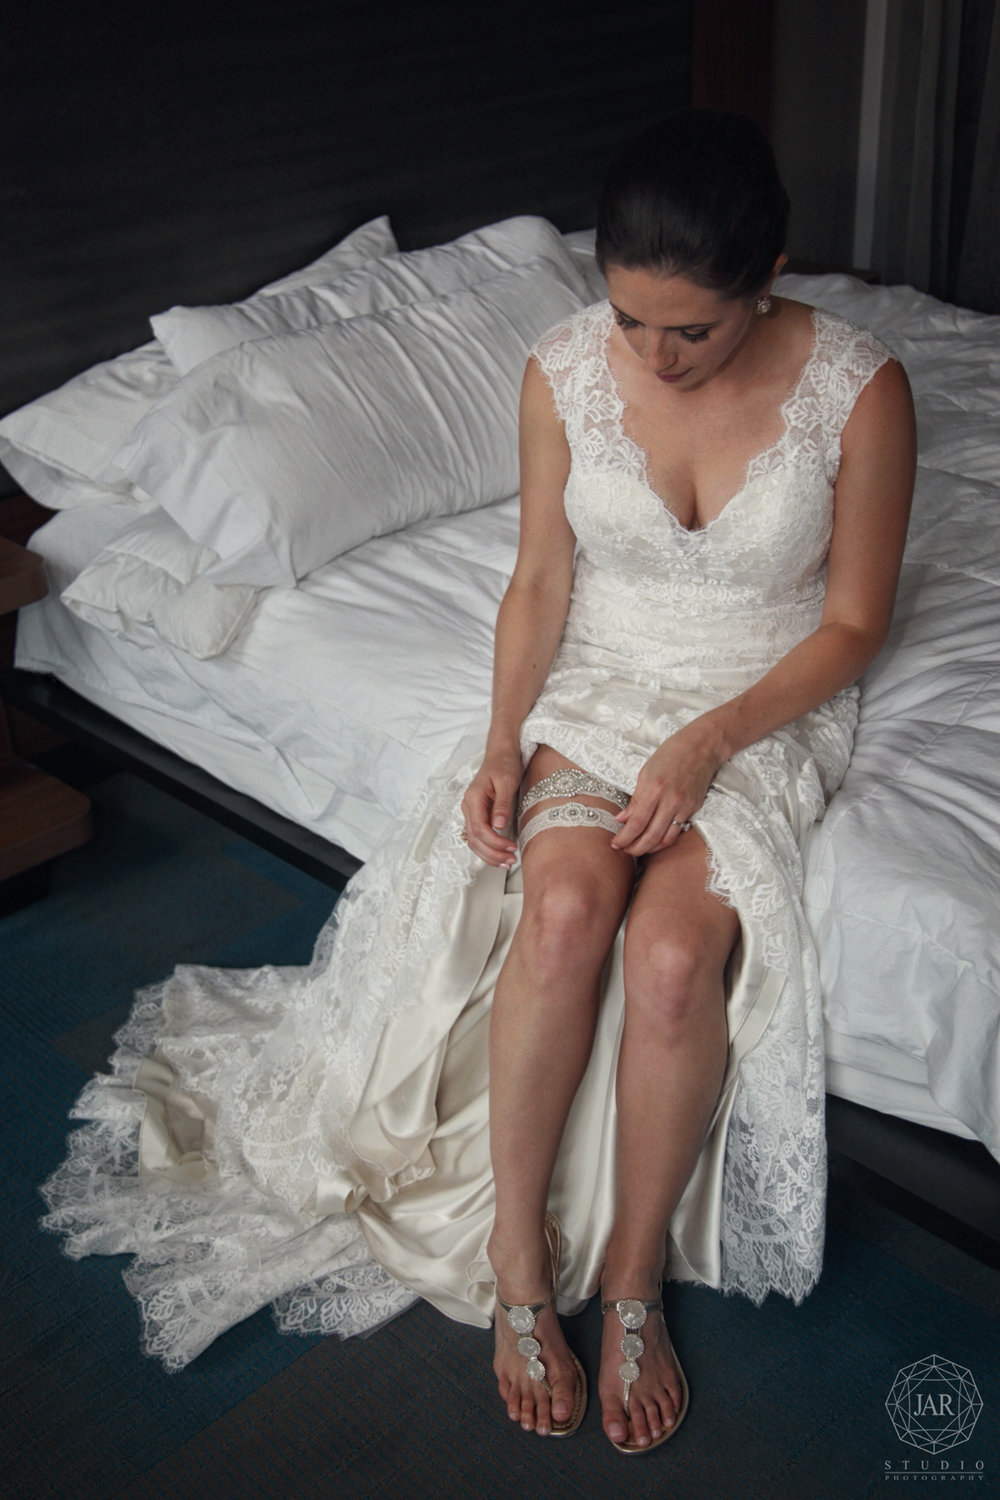 05-bride-wedding-day-getting-ready-beautiful-garter-sandals-jarstudio-photography-orlando.JPG